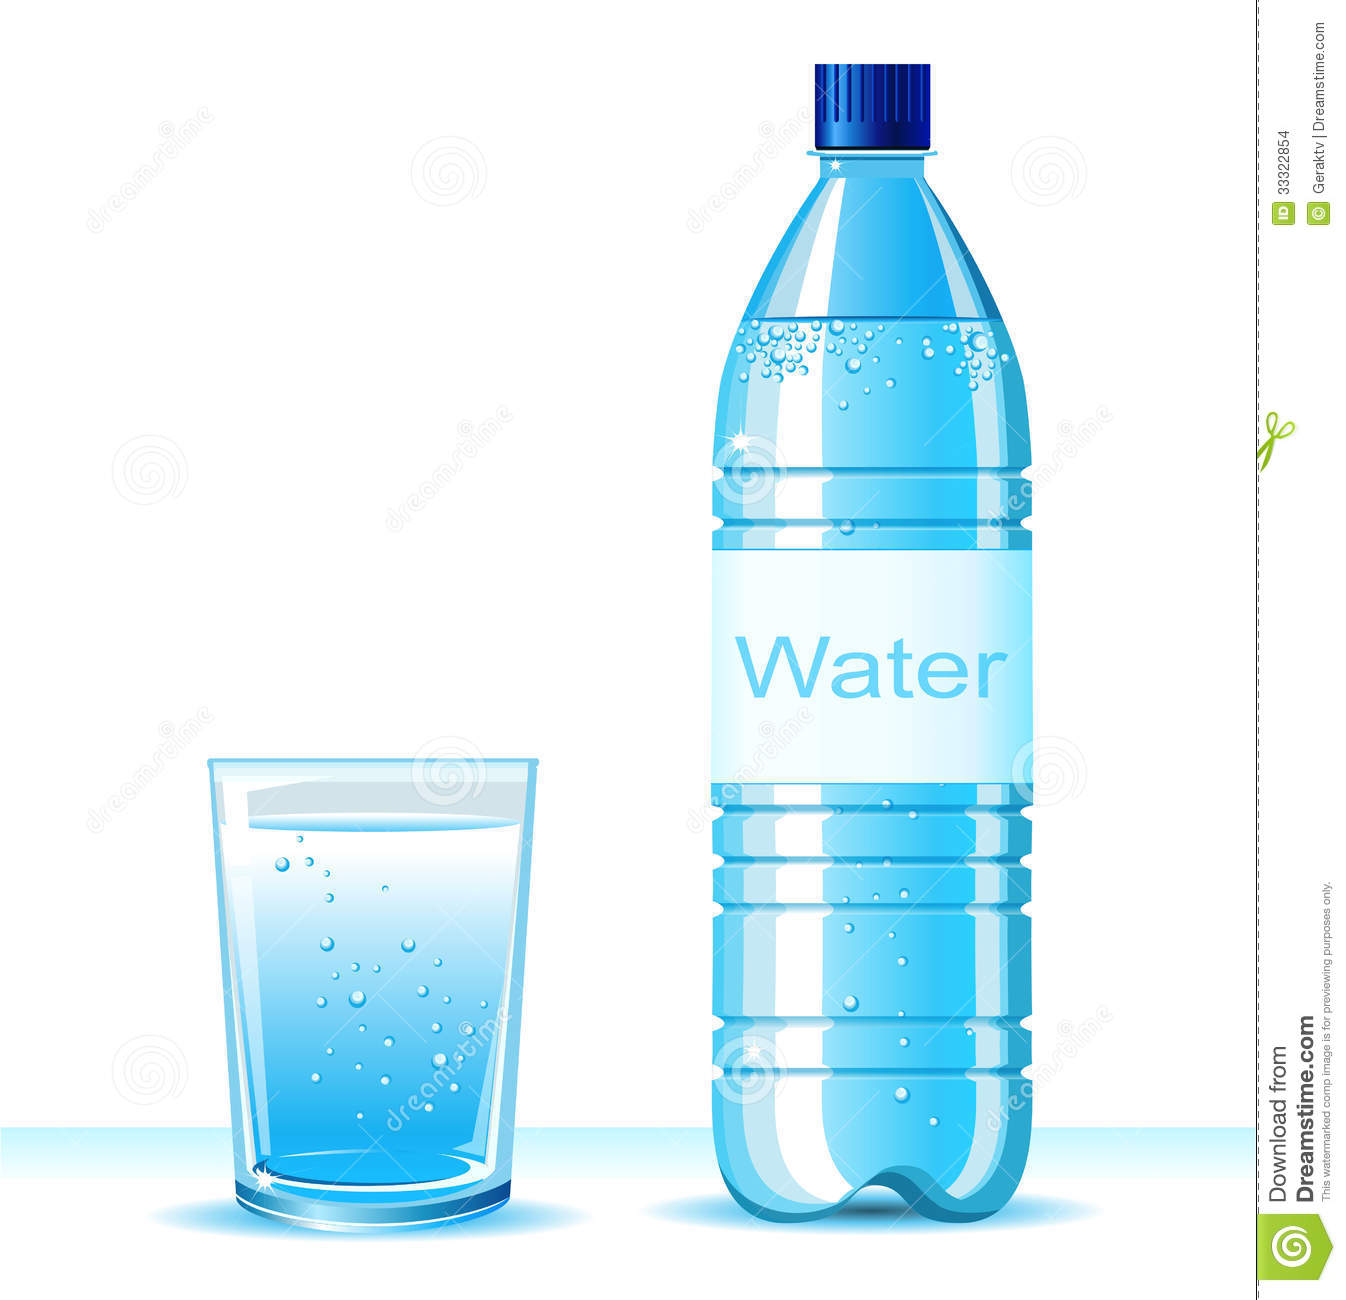 Water Bottle Vector: Bottle Of Clean Water And Glass On White Backgroun Stock